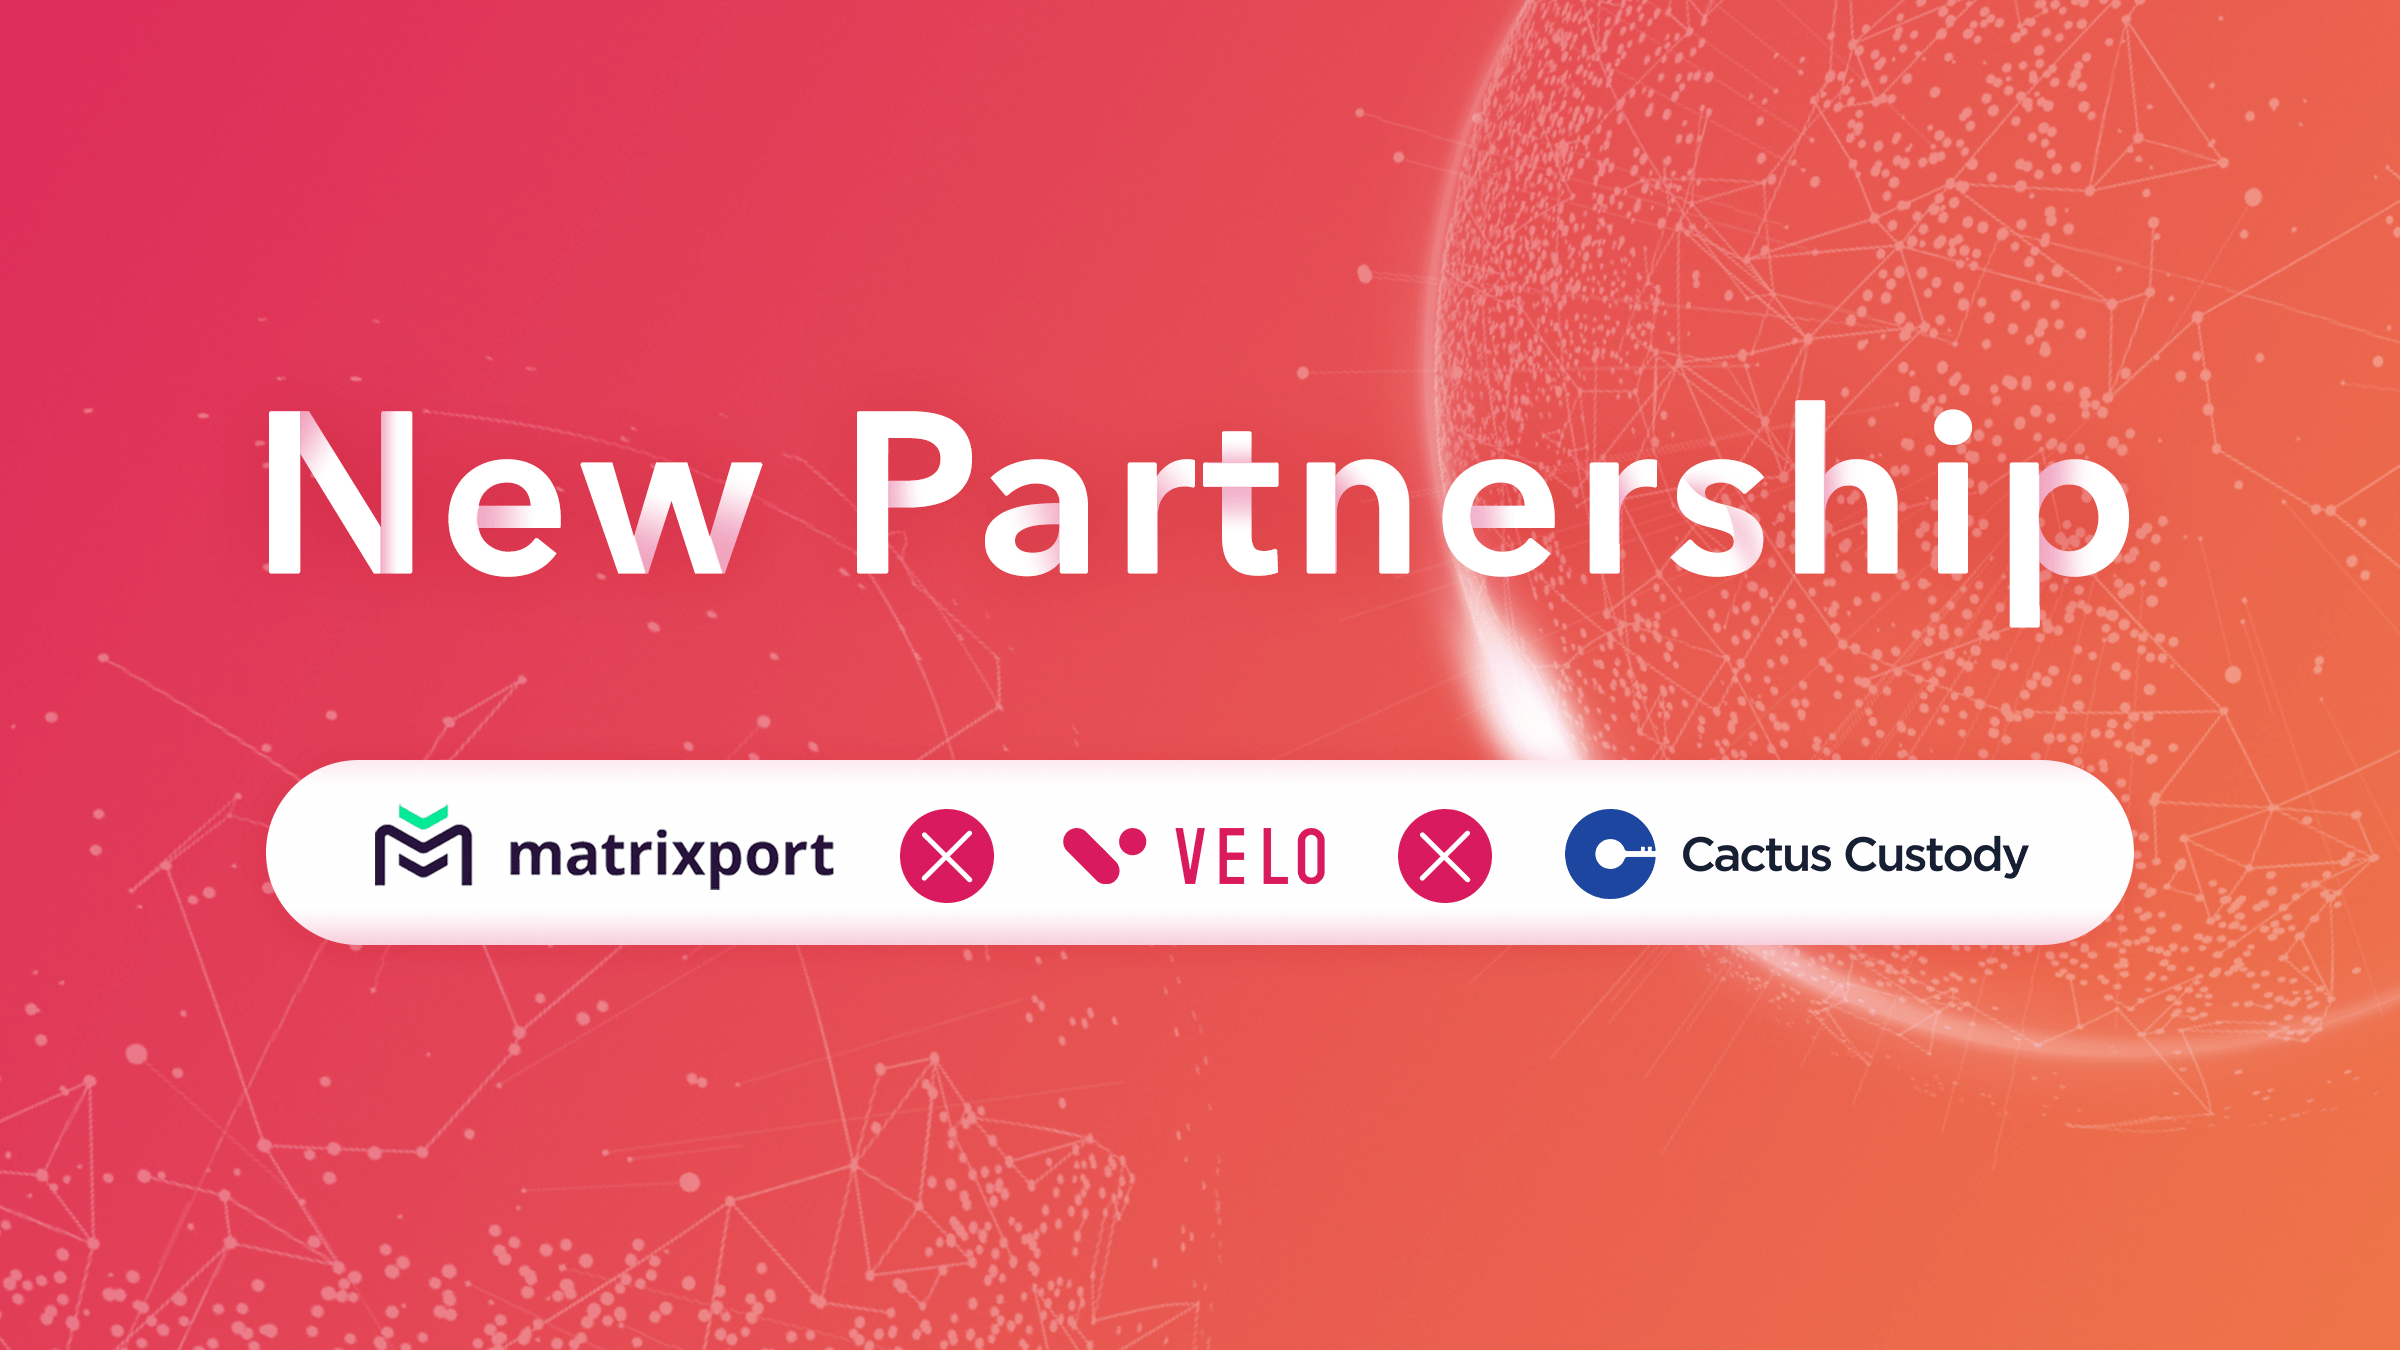 Cactus Custody Supports the VELO Token